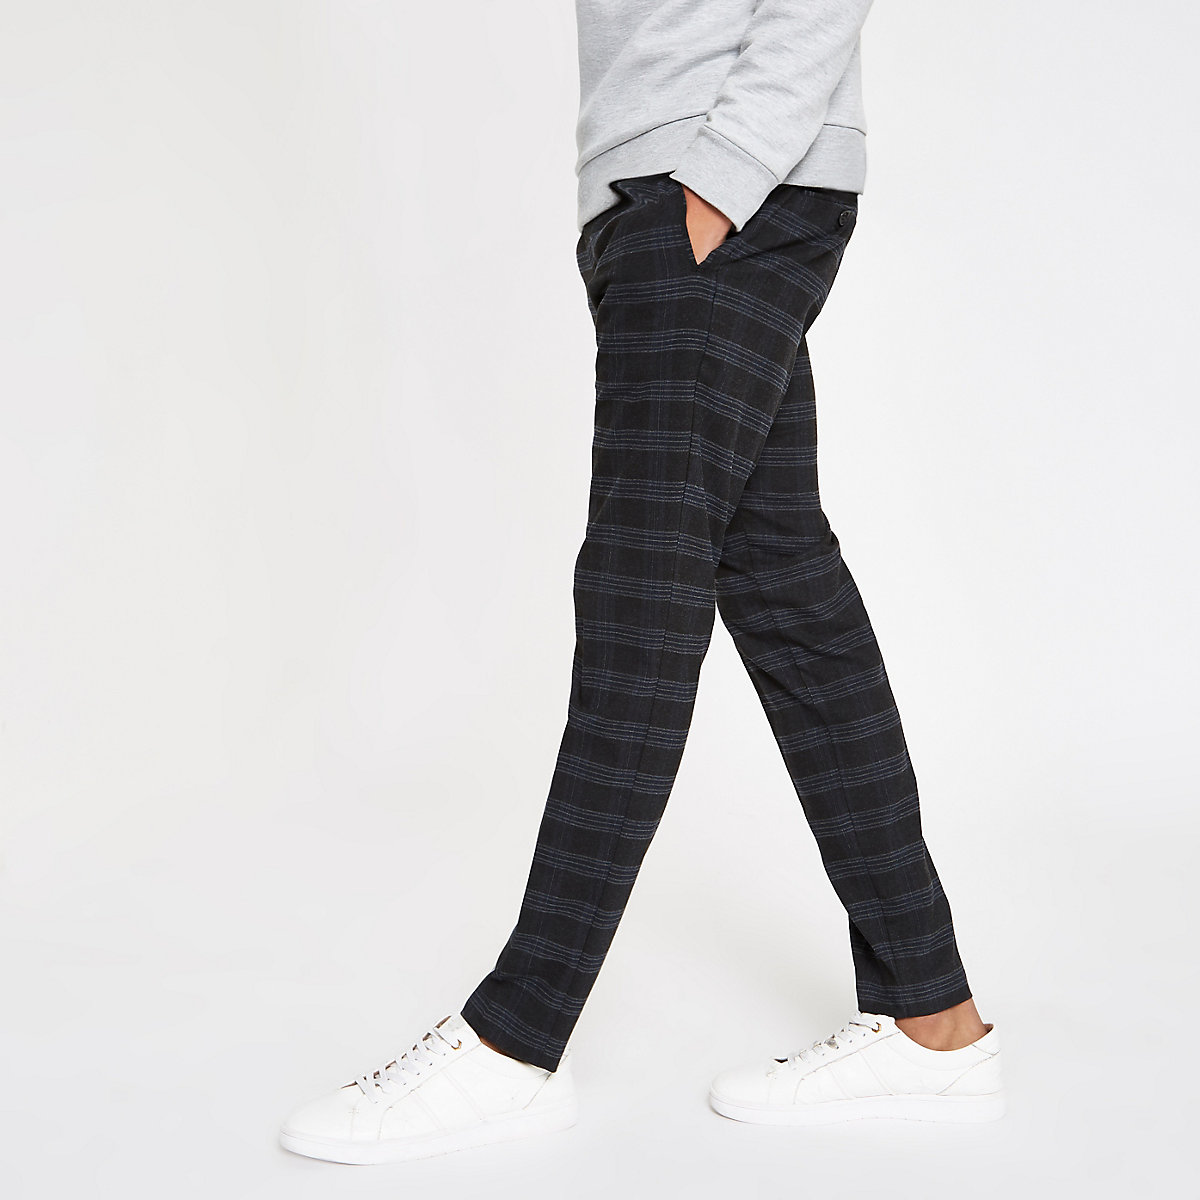 Navy check skinny fit smart pants